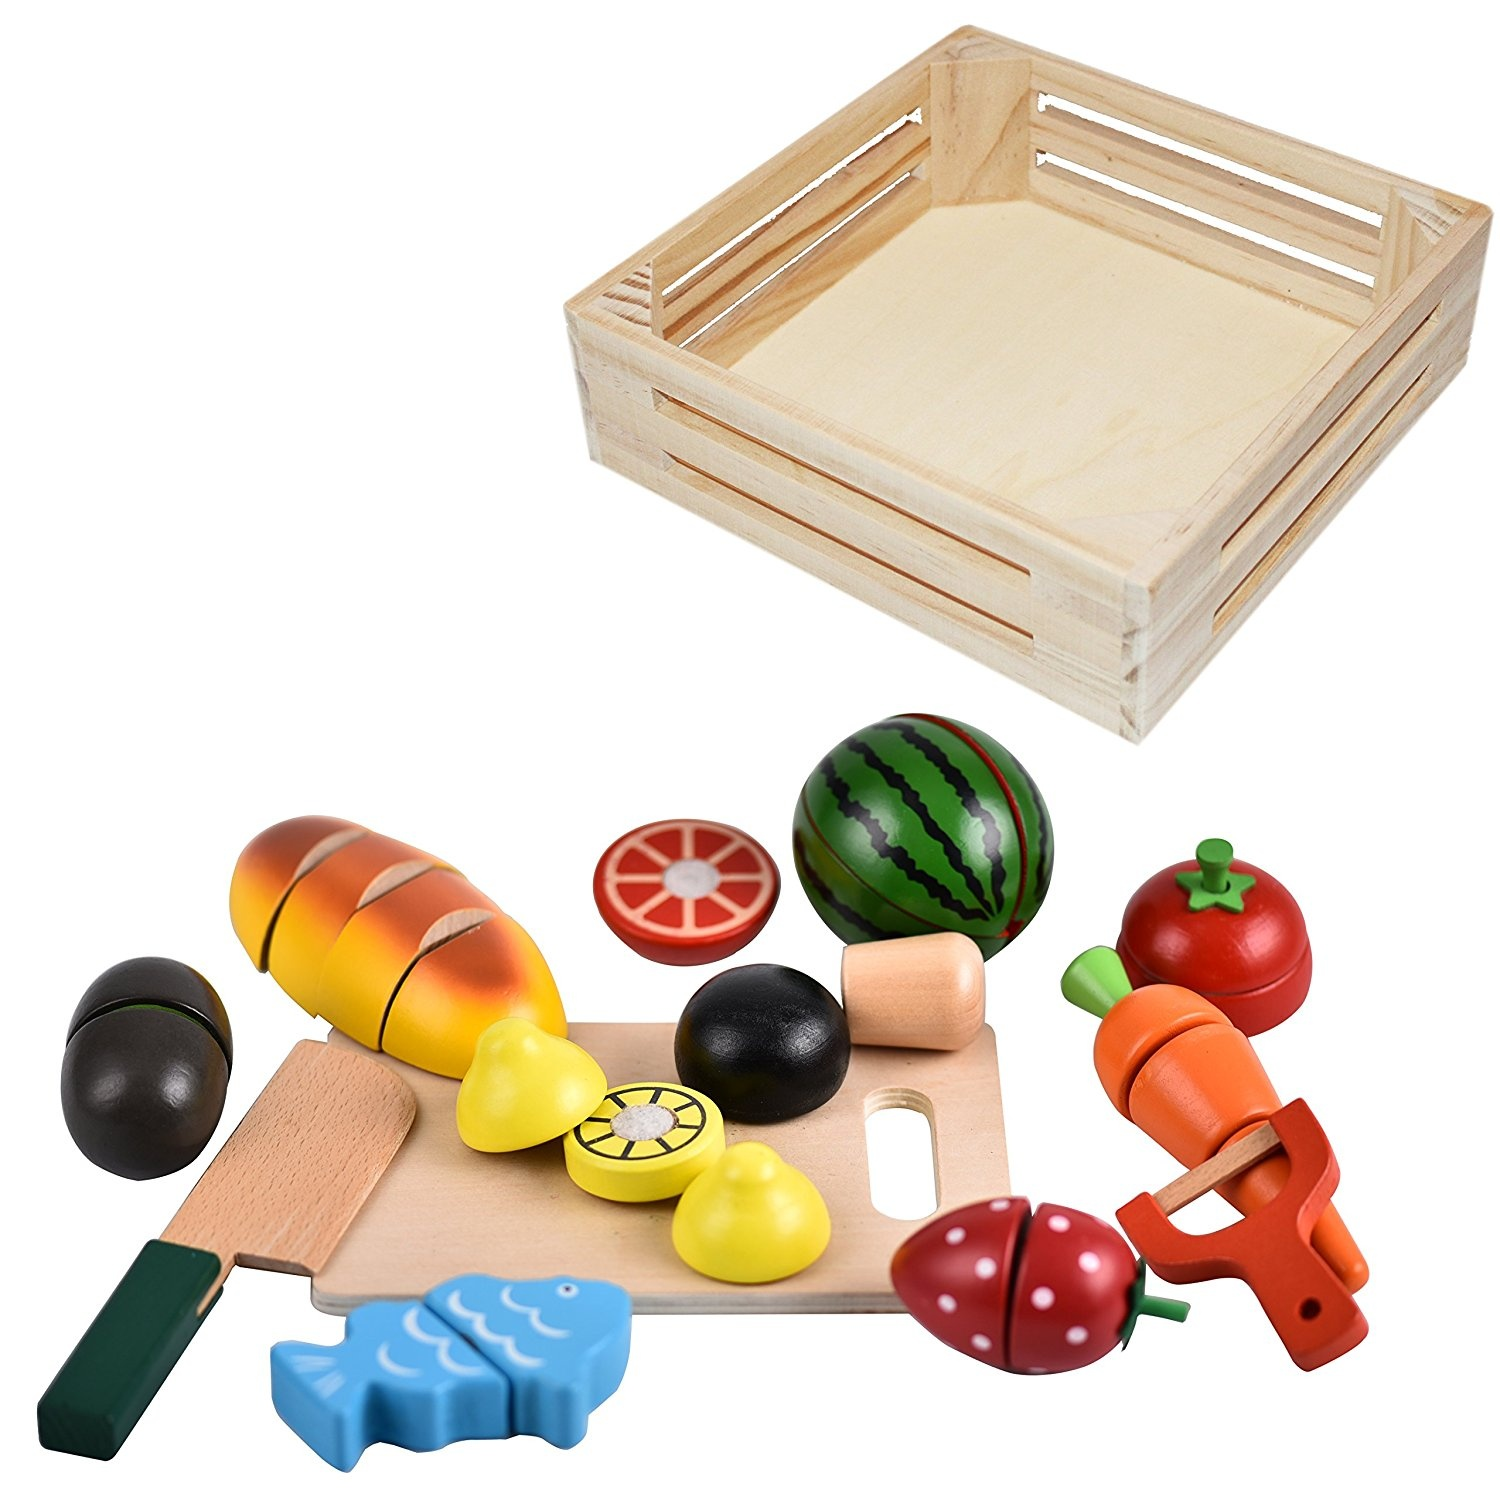 CARLORBO Wooden Toys Pretend Play Food for Children Kitchen,Role ...